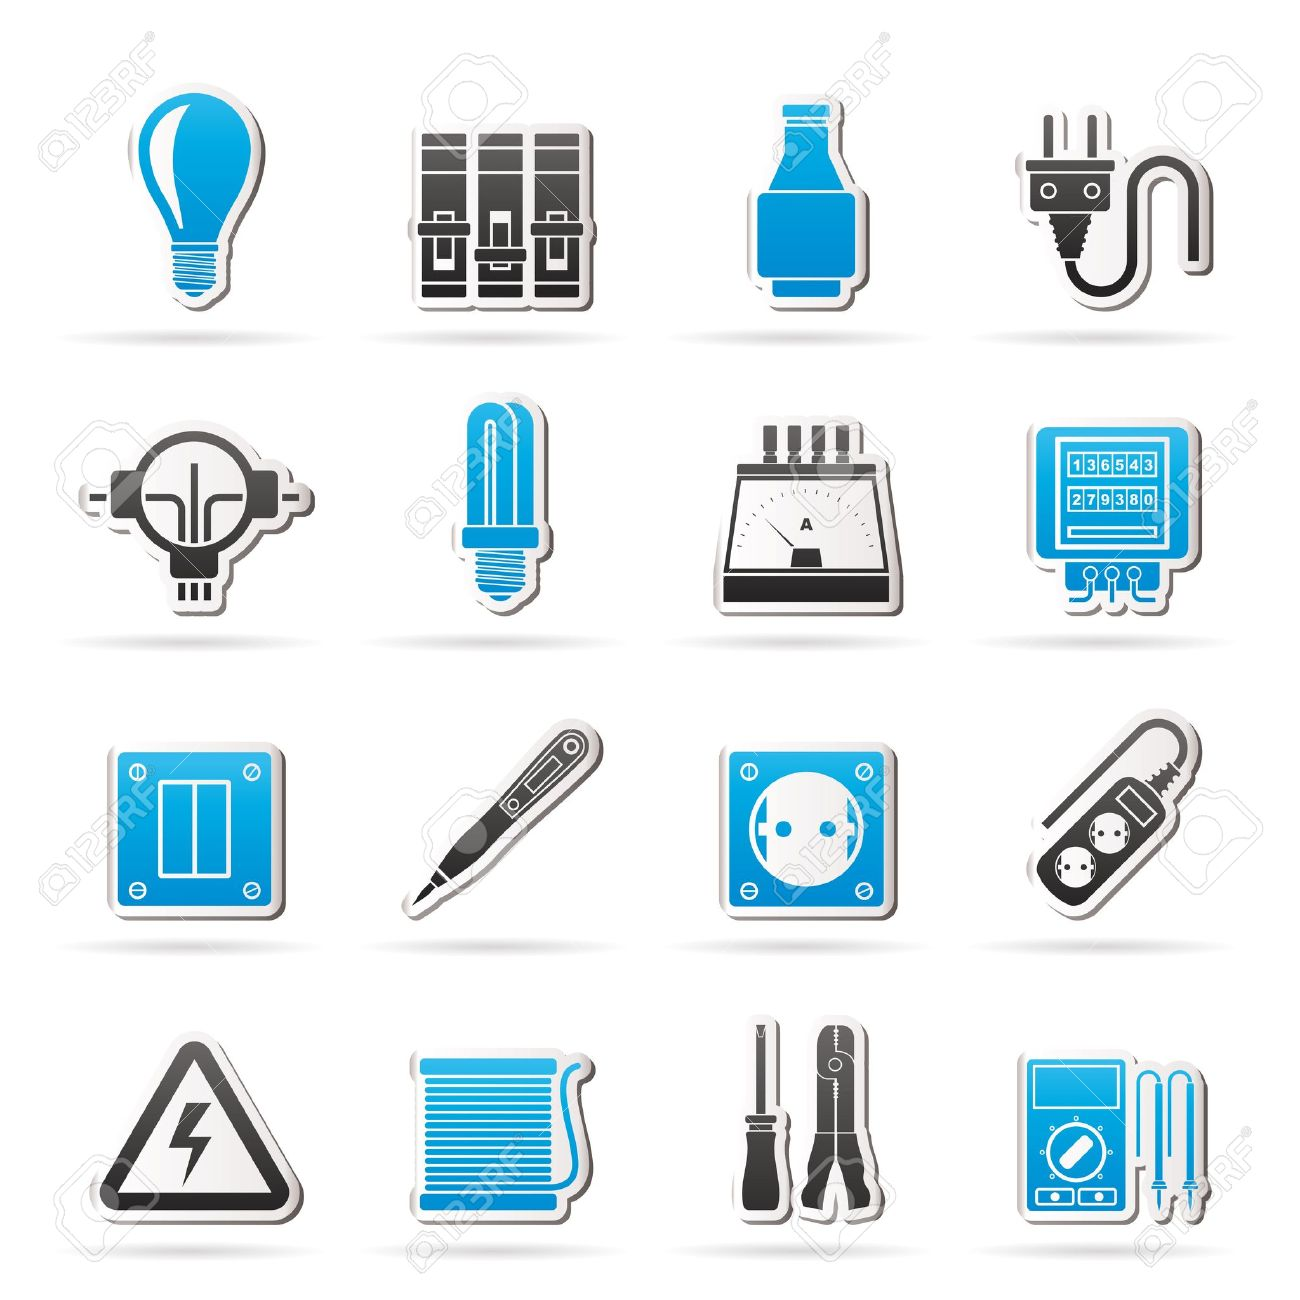 Electrical devices and equipment icons - icon set - 19380220